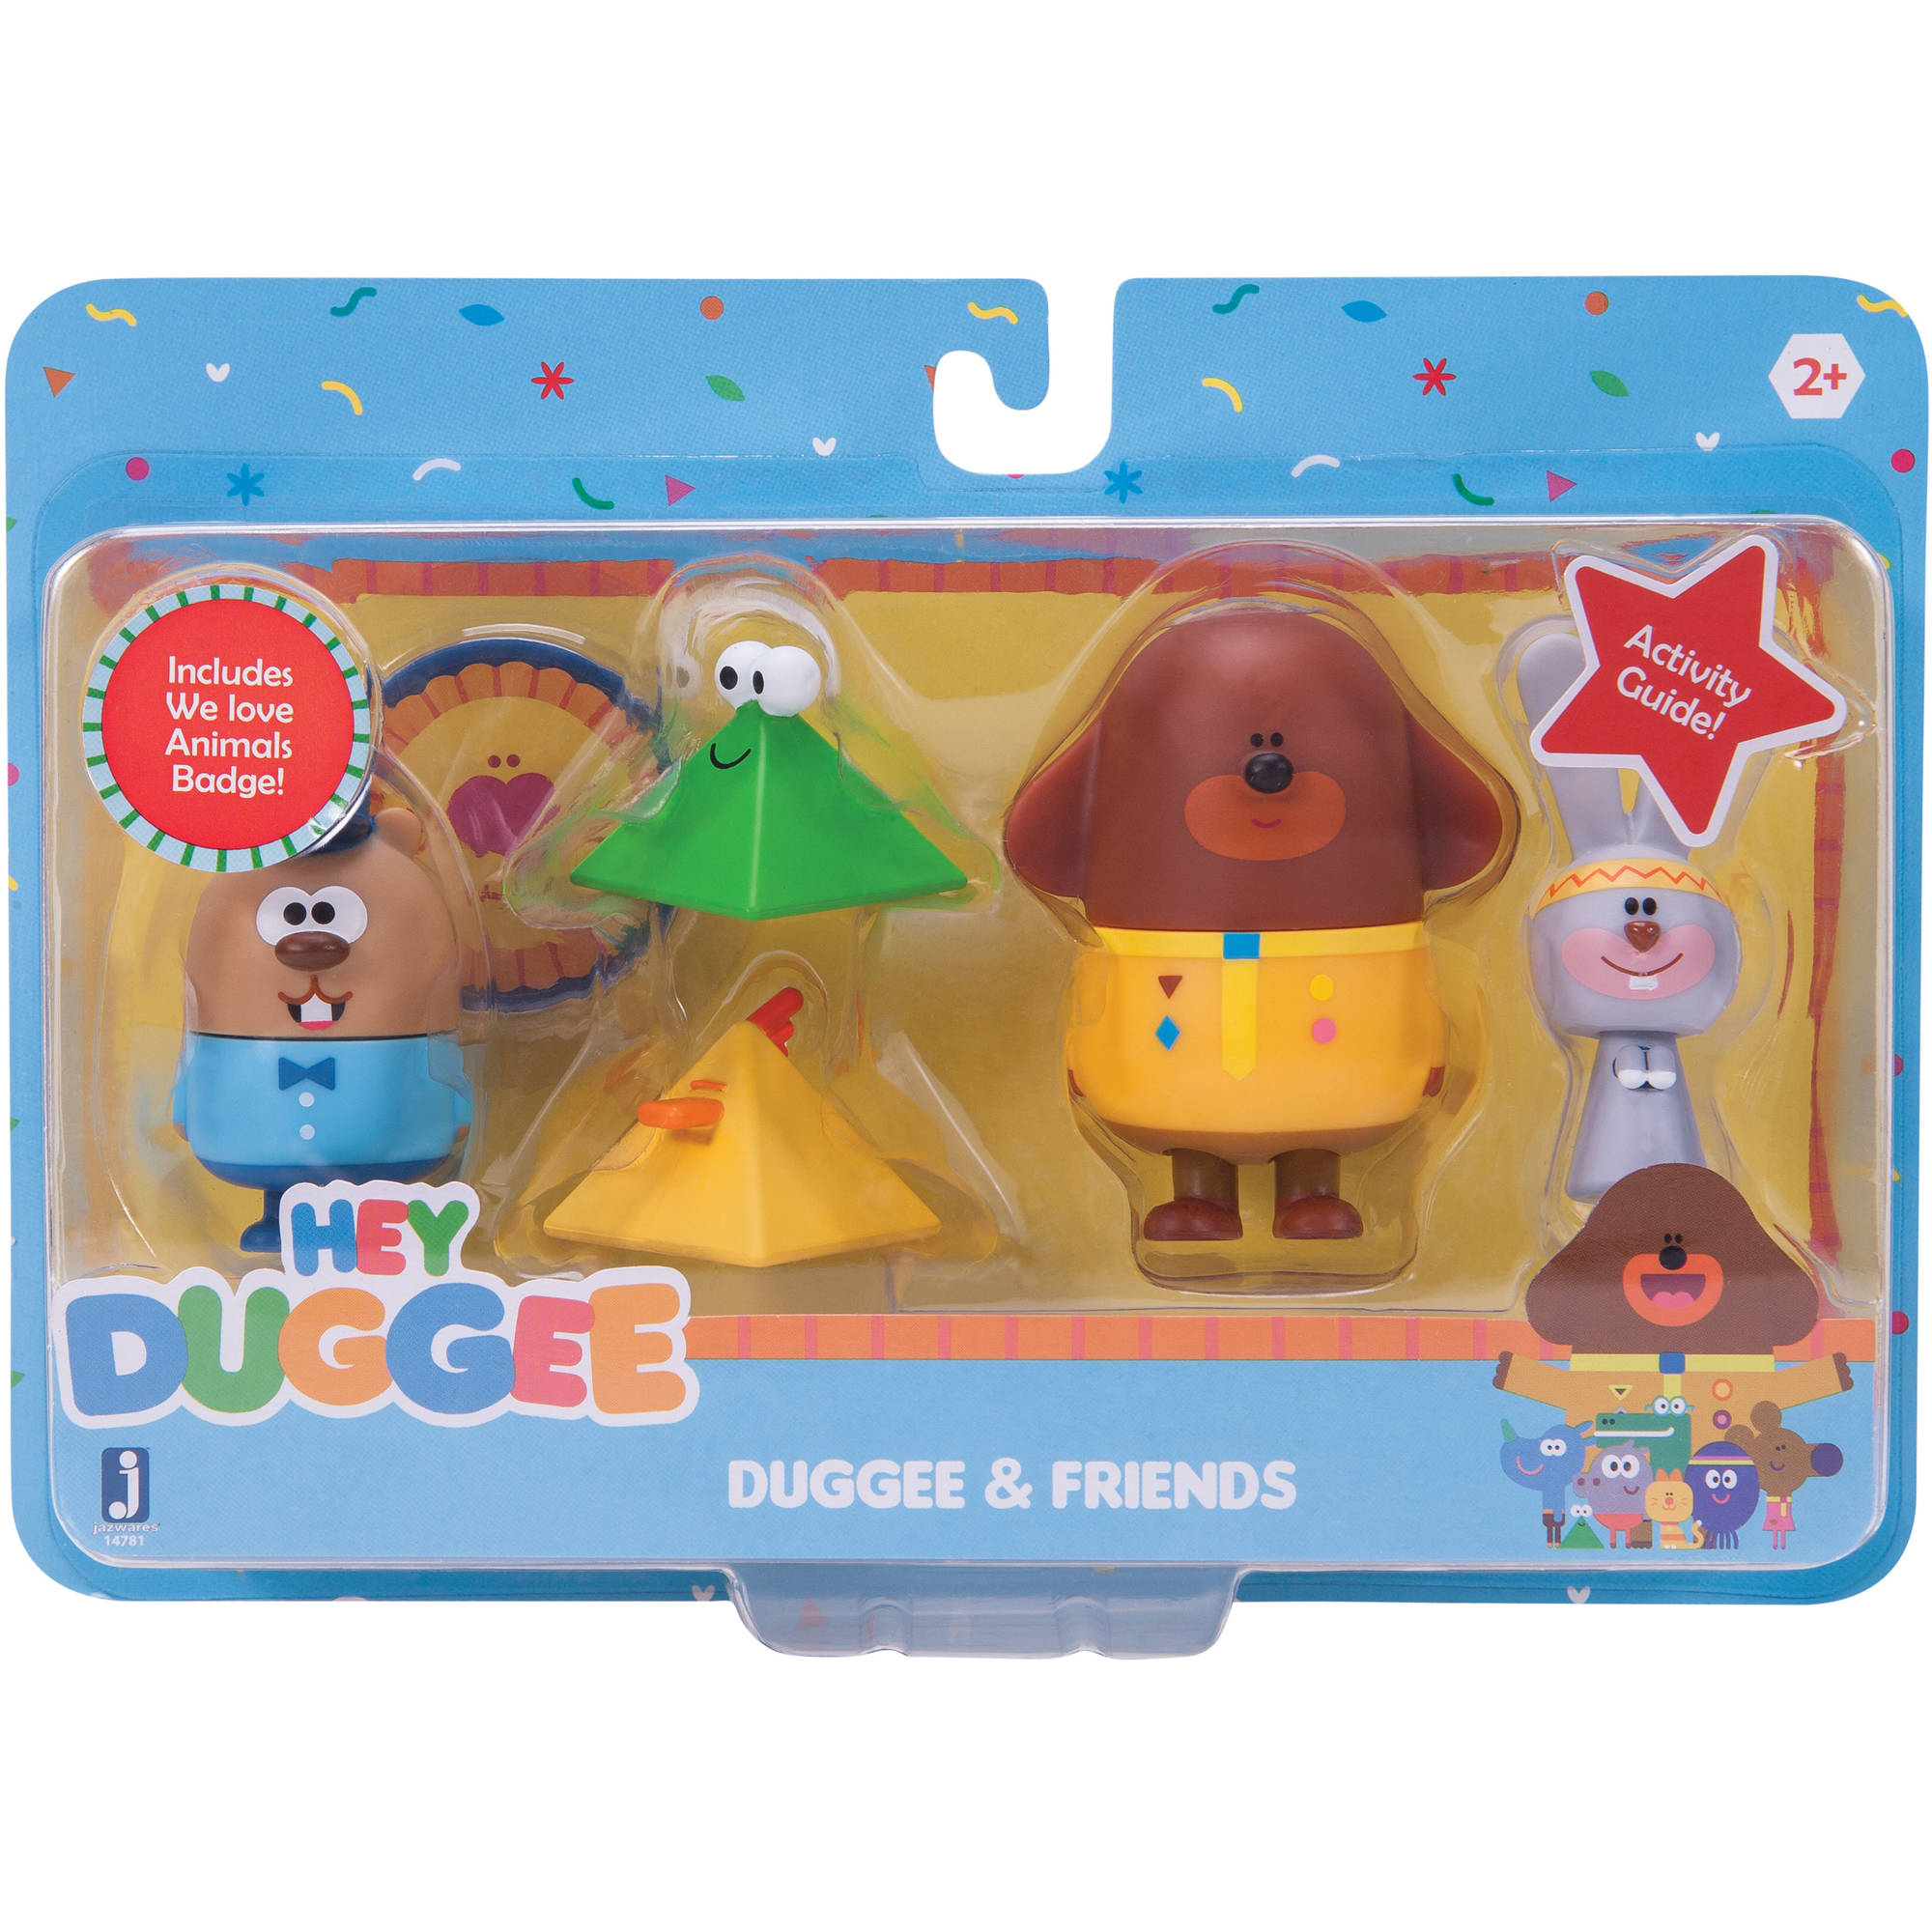 Hey Duggee Collectible, 5pk